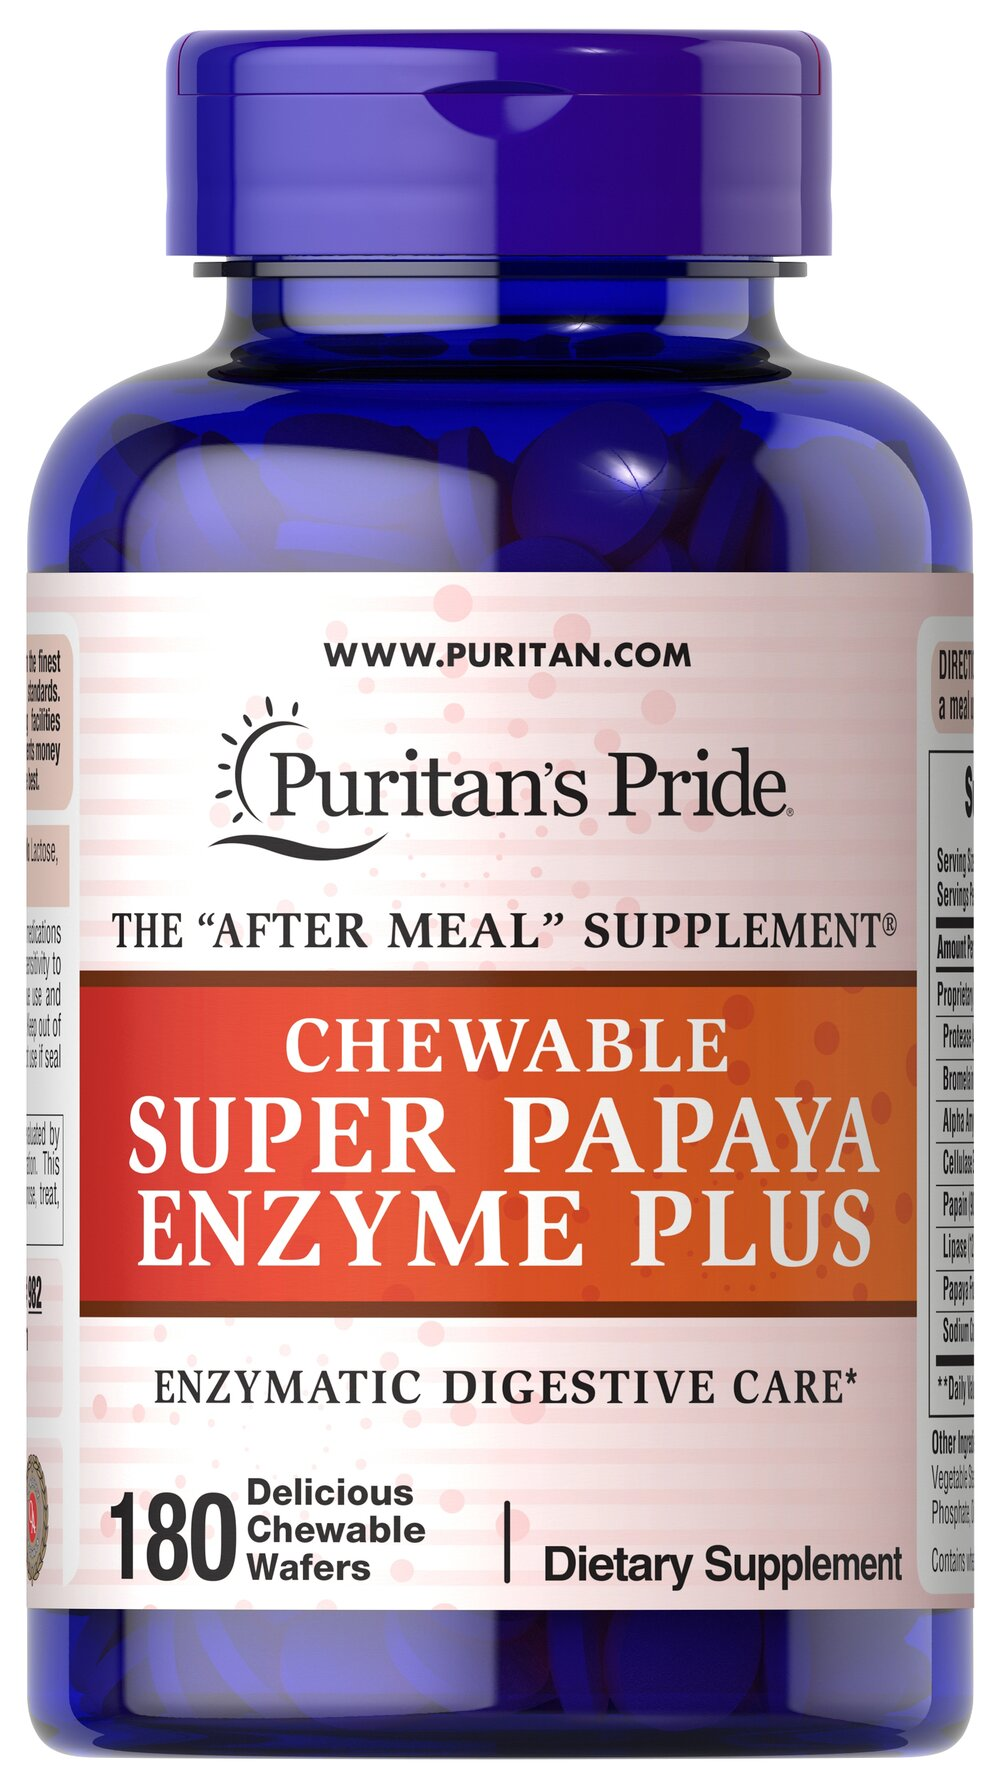 Chewable Super Papaya Enzyme Plus <p>These delicious tablets are made from 100% natural ingredients in a base containing peppermint and chlorophyll (for refreshing taste and sweet breath).</p><p>Papain is a proteolytic enzyme and a popular ingredient in dietary supplements used for digestion.**</p><p>Taken after meals, it is a perfect natural supplement that may assist in digestion. **</p> 180 Chewables  $14.39